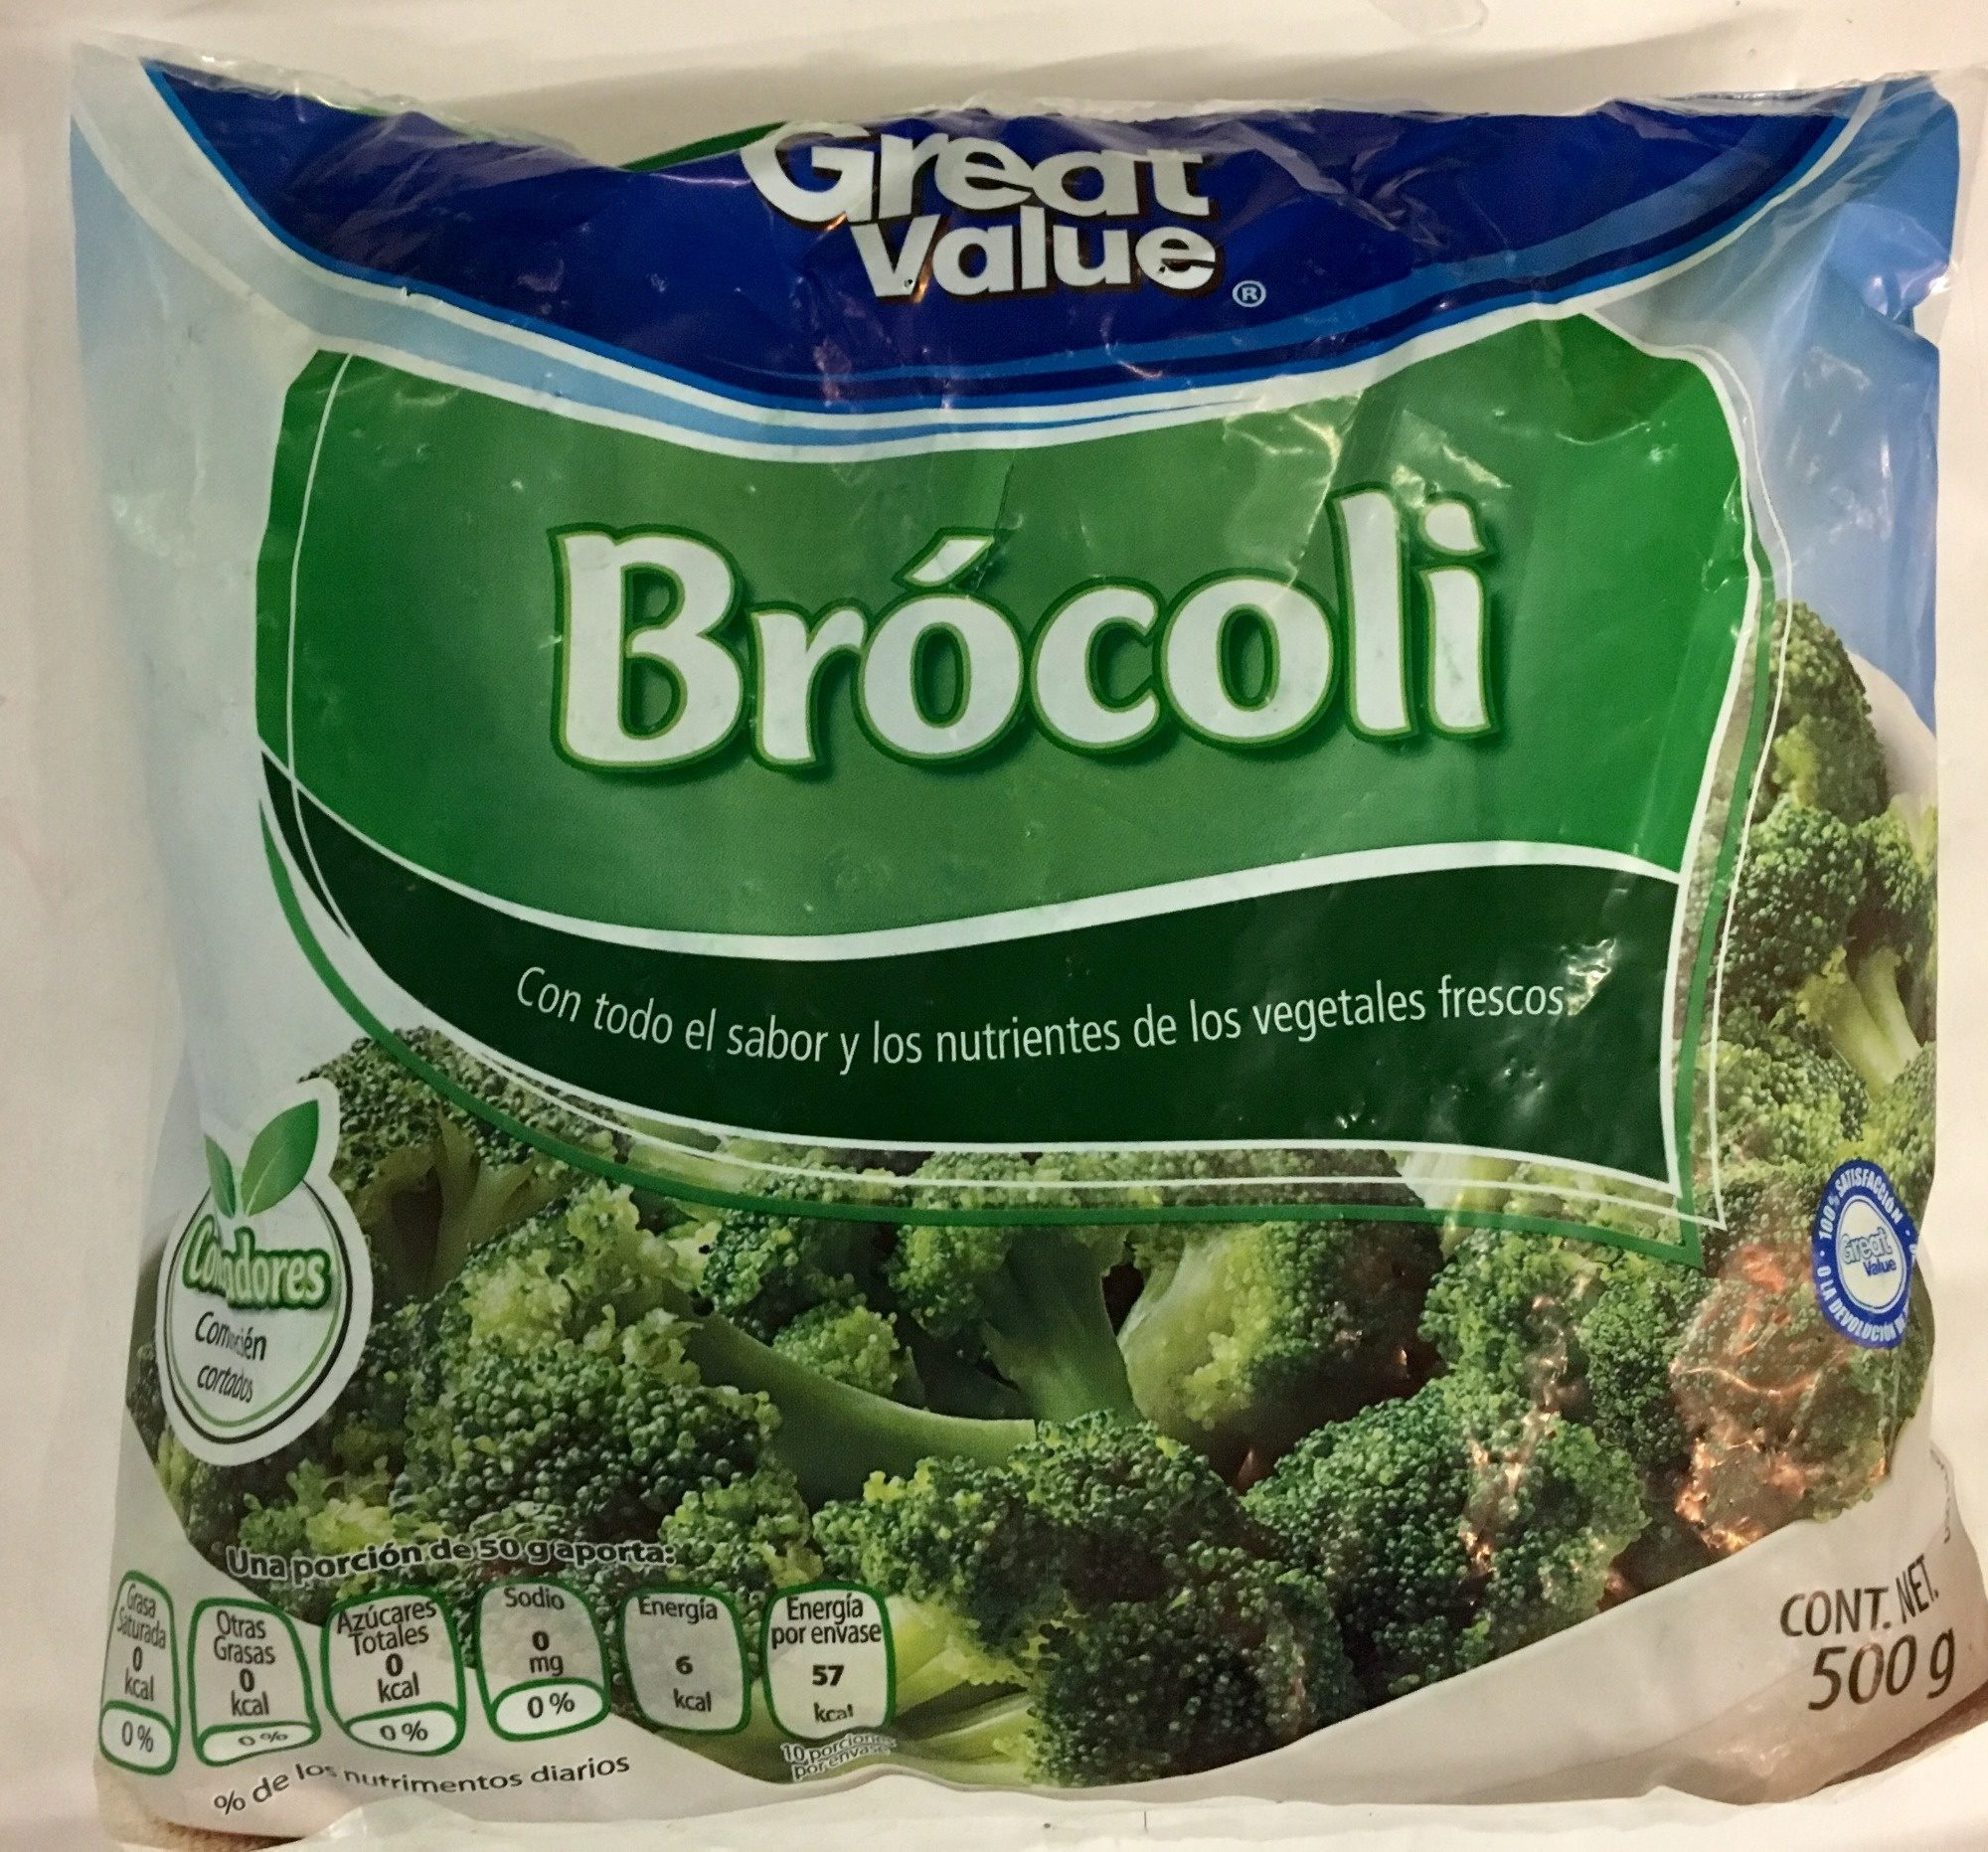 Brócoli, Great Value, - Product - es